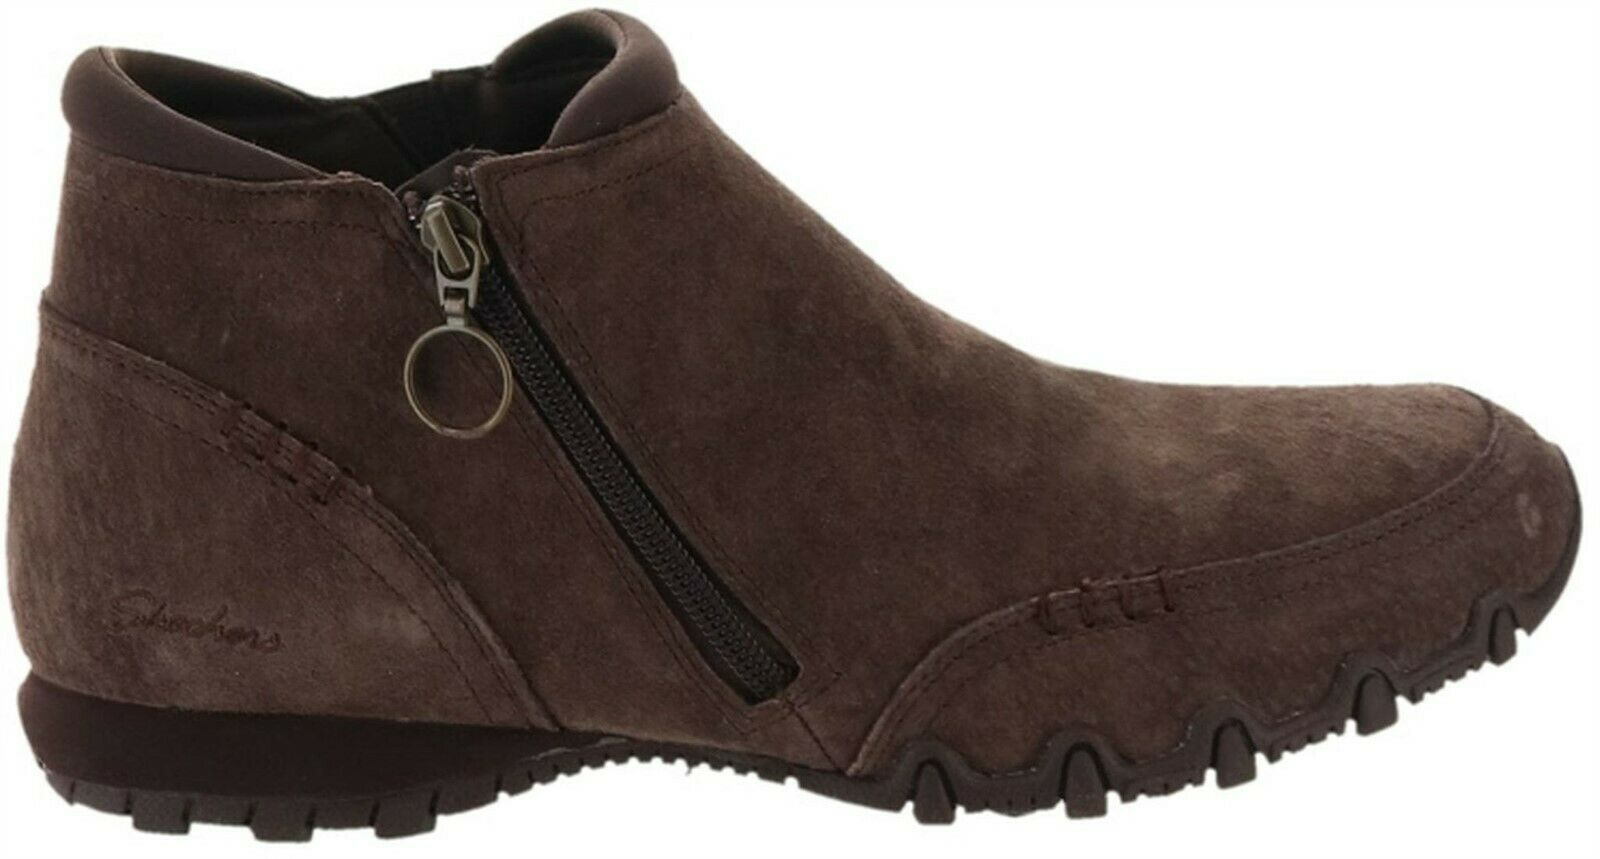 Primary image for Skechers Relaxed Fit Suede Ankle Boots Zappiest Chocolate 7.5W NEW A342535